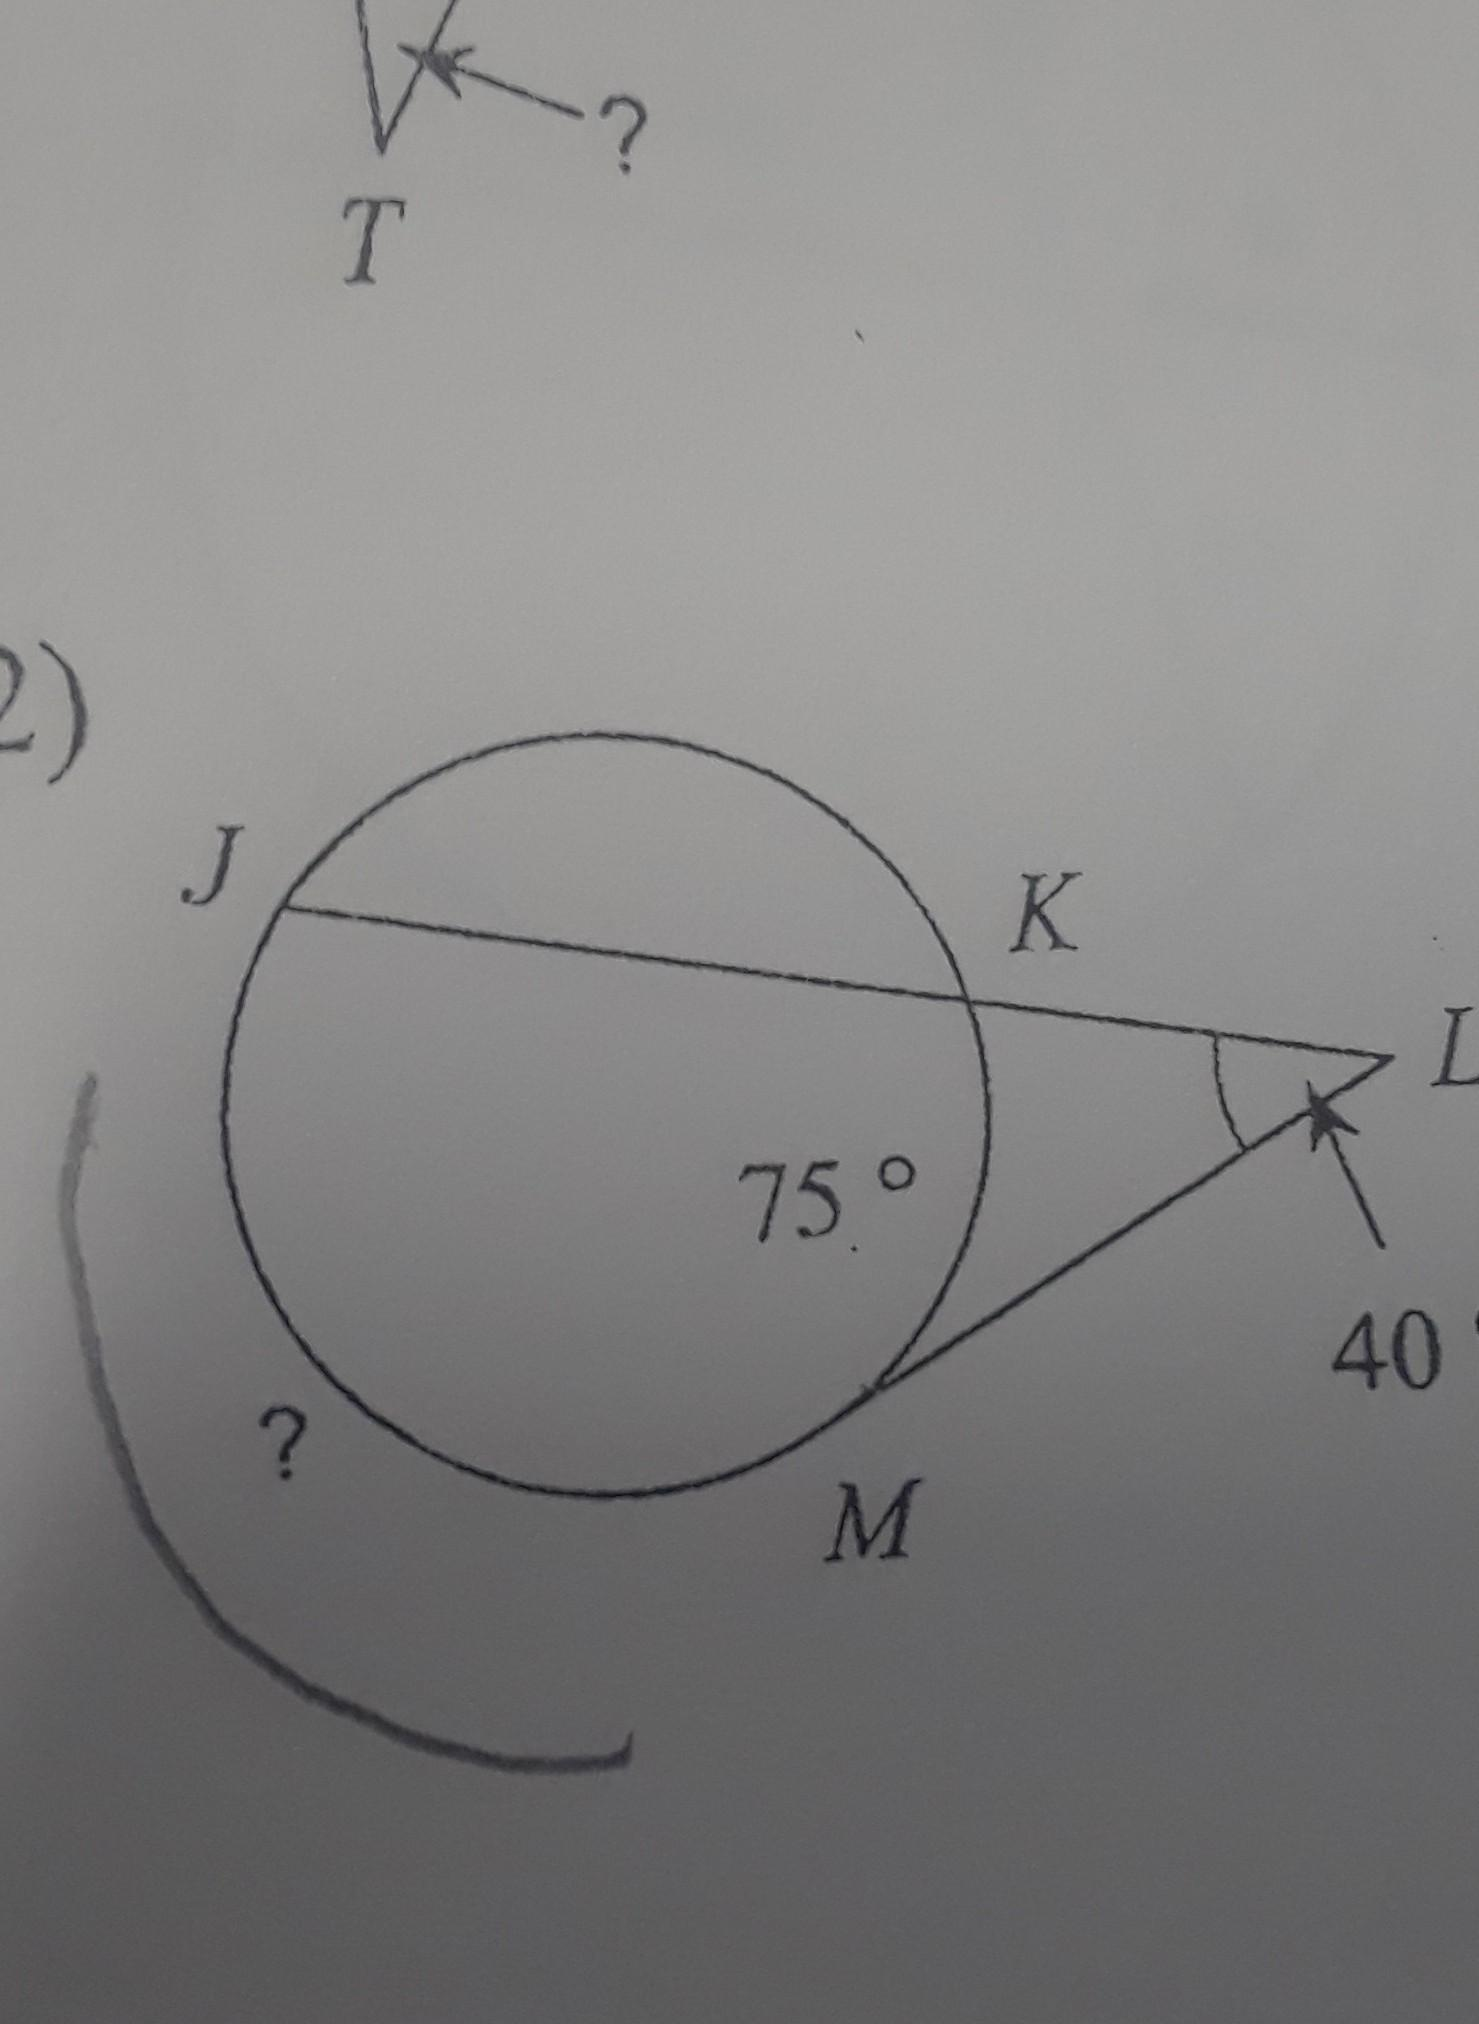 Find The Measure Of The Arc Or Angle Indicated Assume